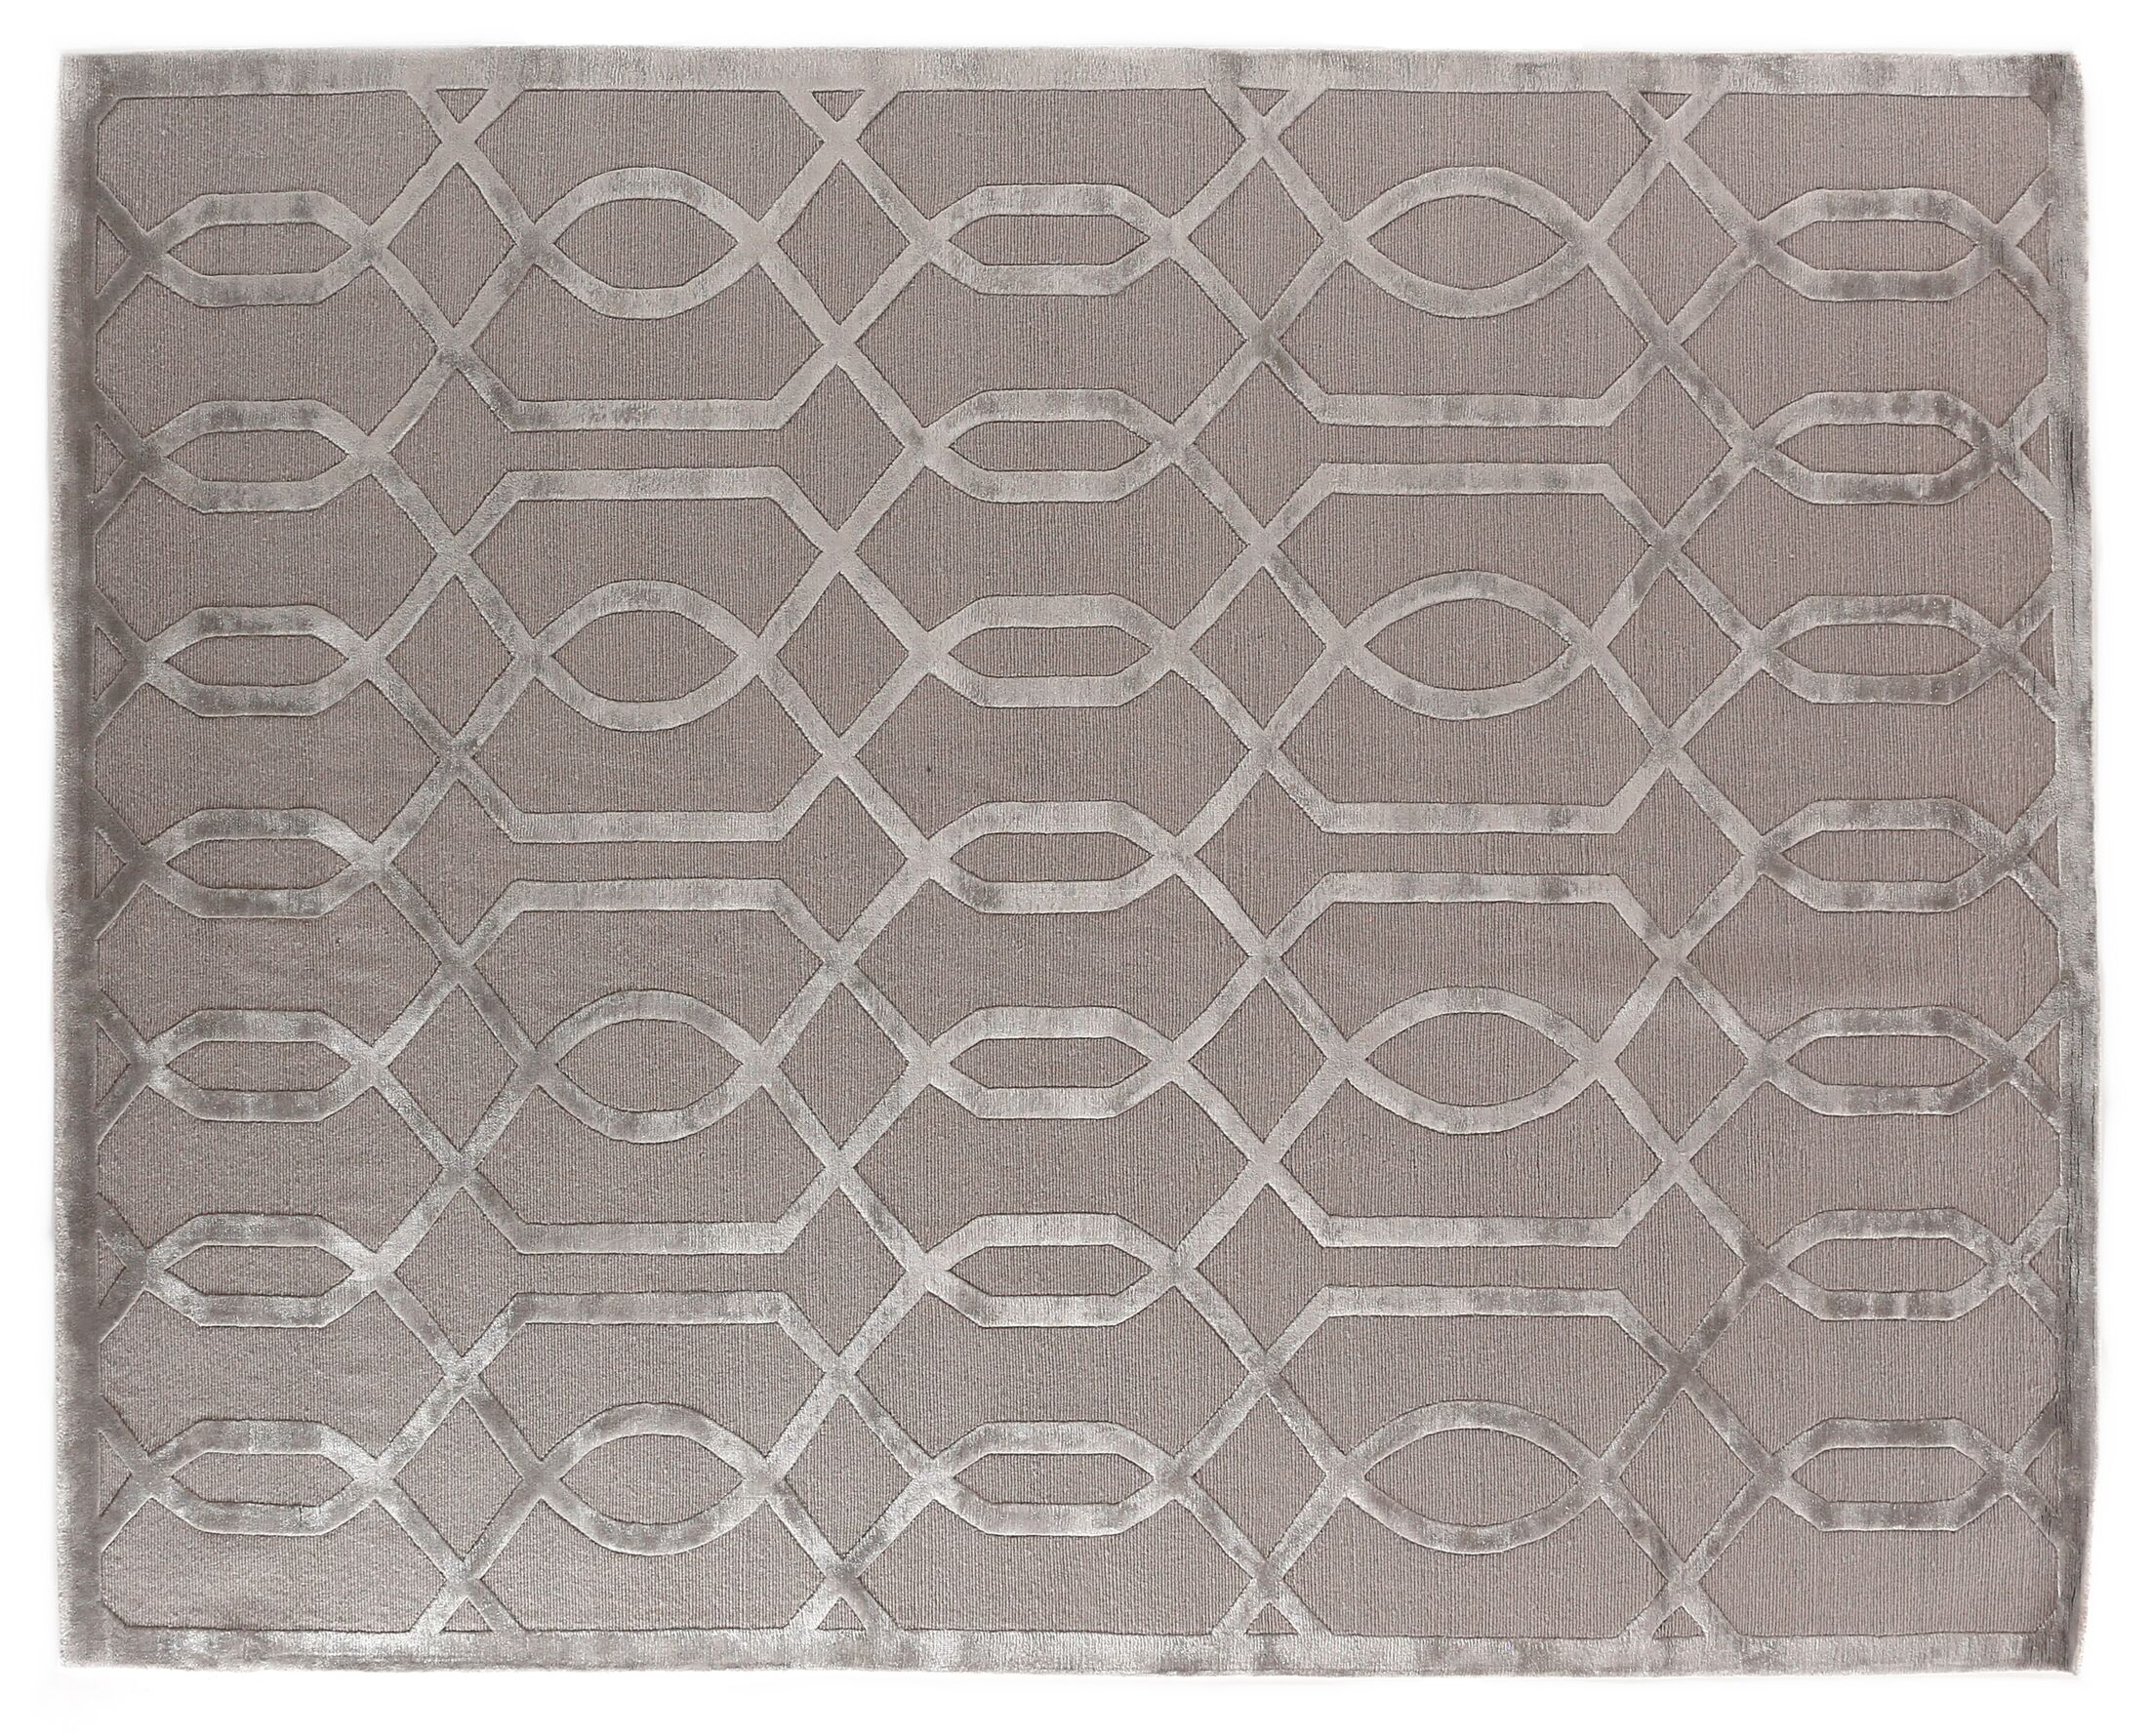 Hand-Knotted Wool/Silk Gray/Silver Area Rug Rug Size: Rectangle 9' x 12'